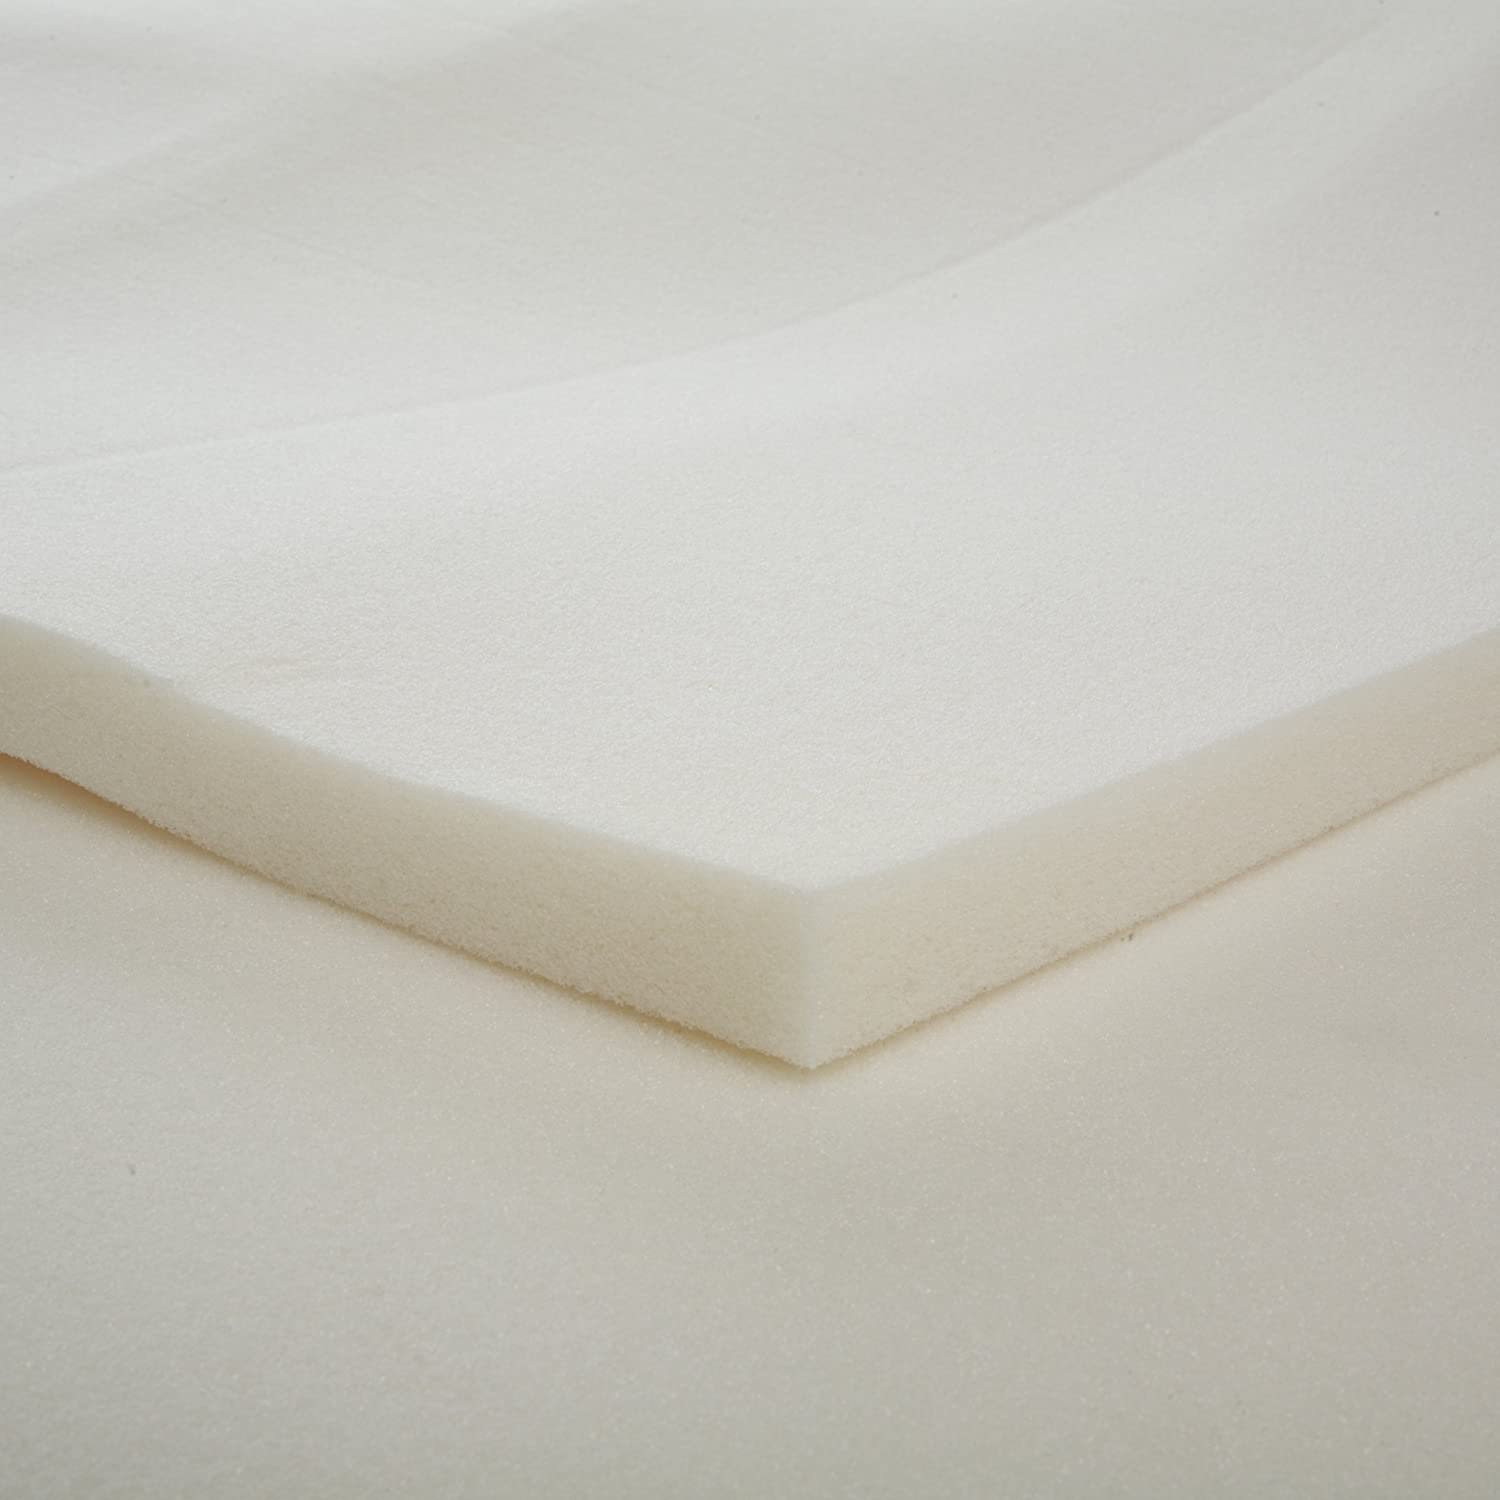 Memory Foam Bed Bedding Mattress Topper Pad Padding Support Comfort 1 Inch Thick